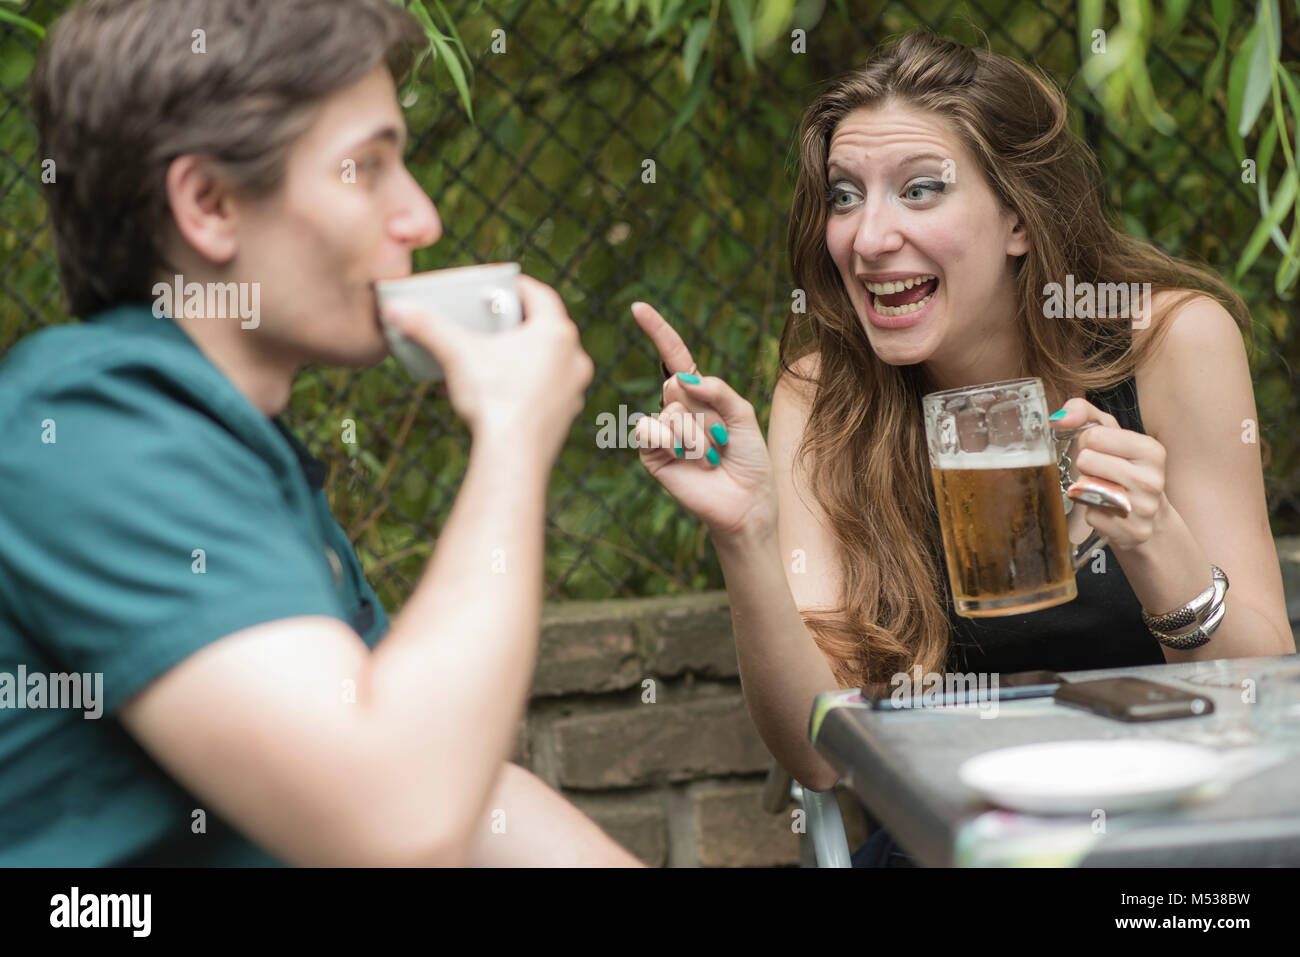 Date going well, man and woman chatting over drinks - Stock Image